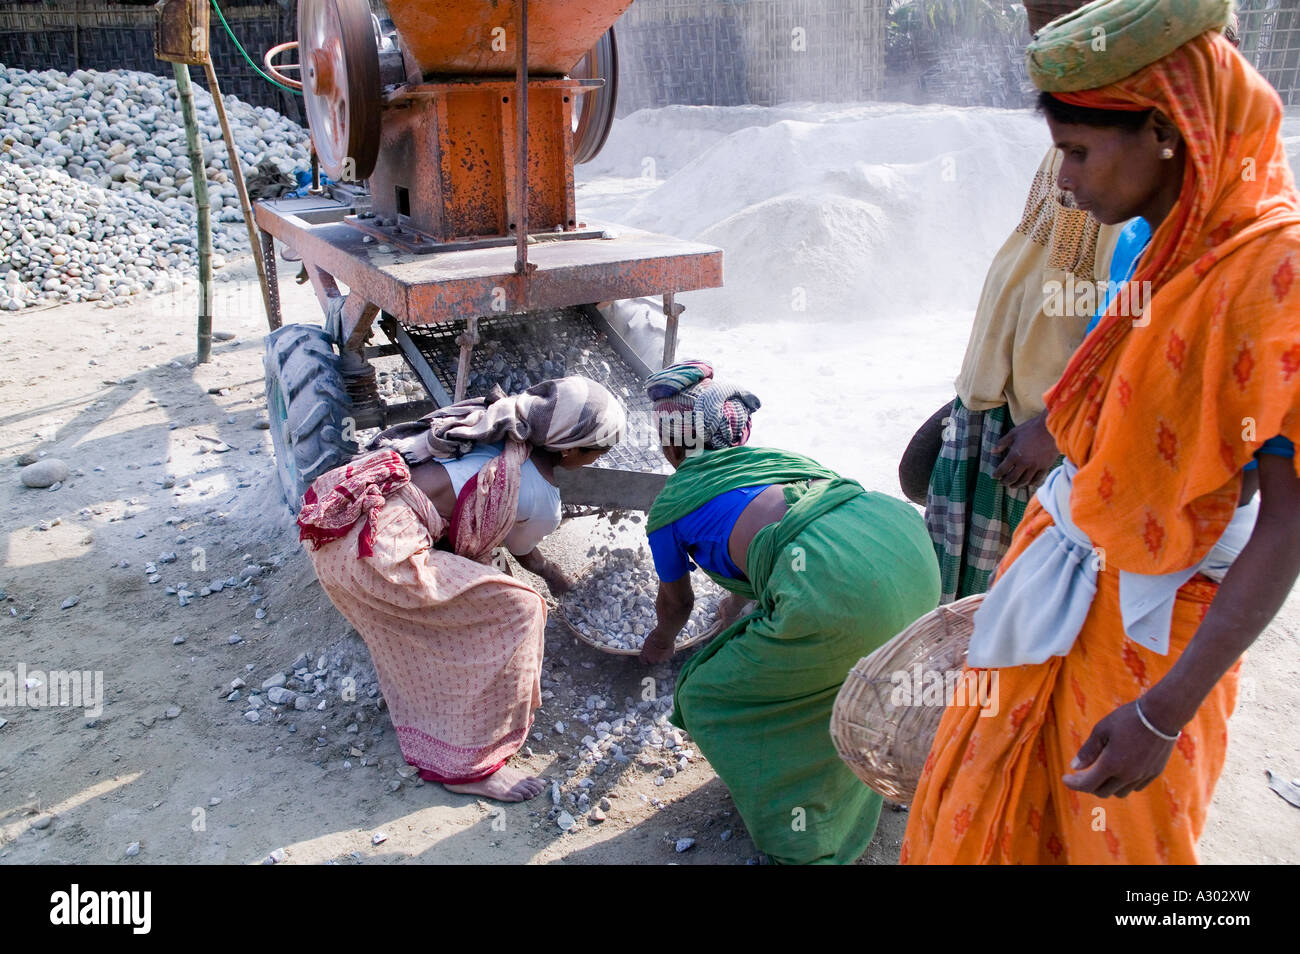 Workers using a rock breaking machine in Northern Bangladesh - Stock Image